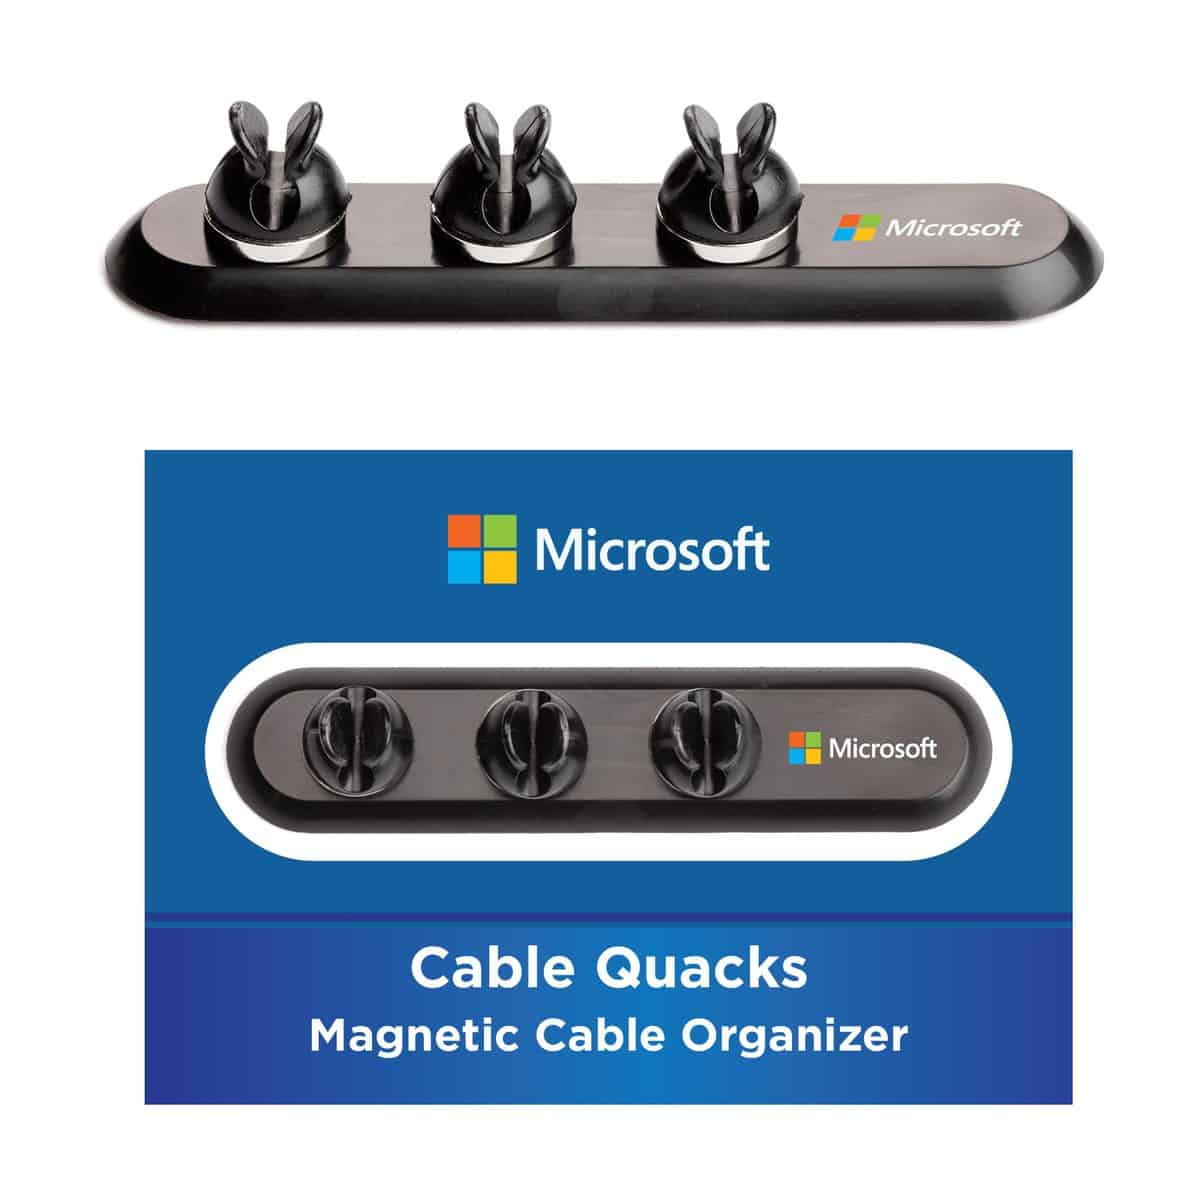 Cable Quacks + Custom Package